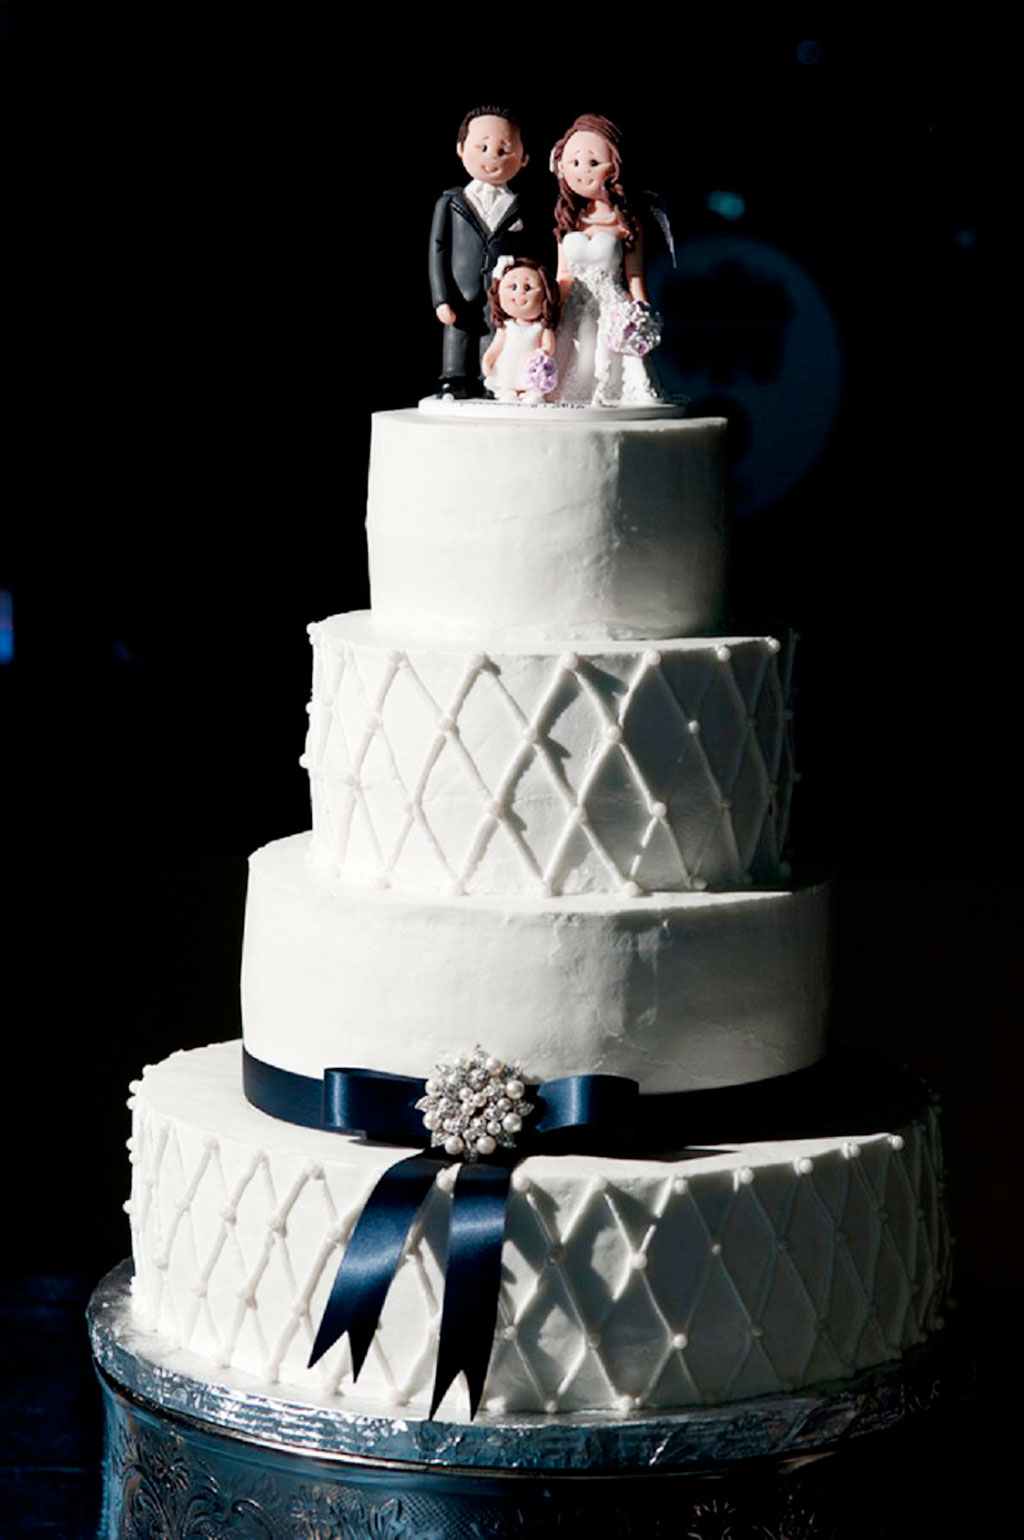 wedding cake bakery louisville ky wedding cakes in louisville ky pic 2 wedding cake cake 21946